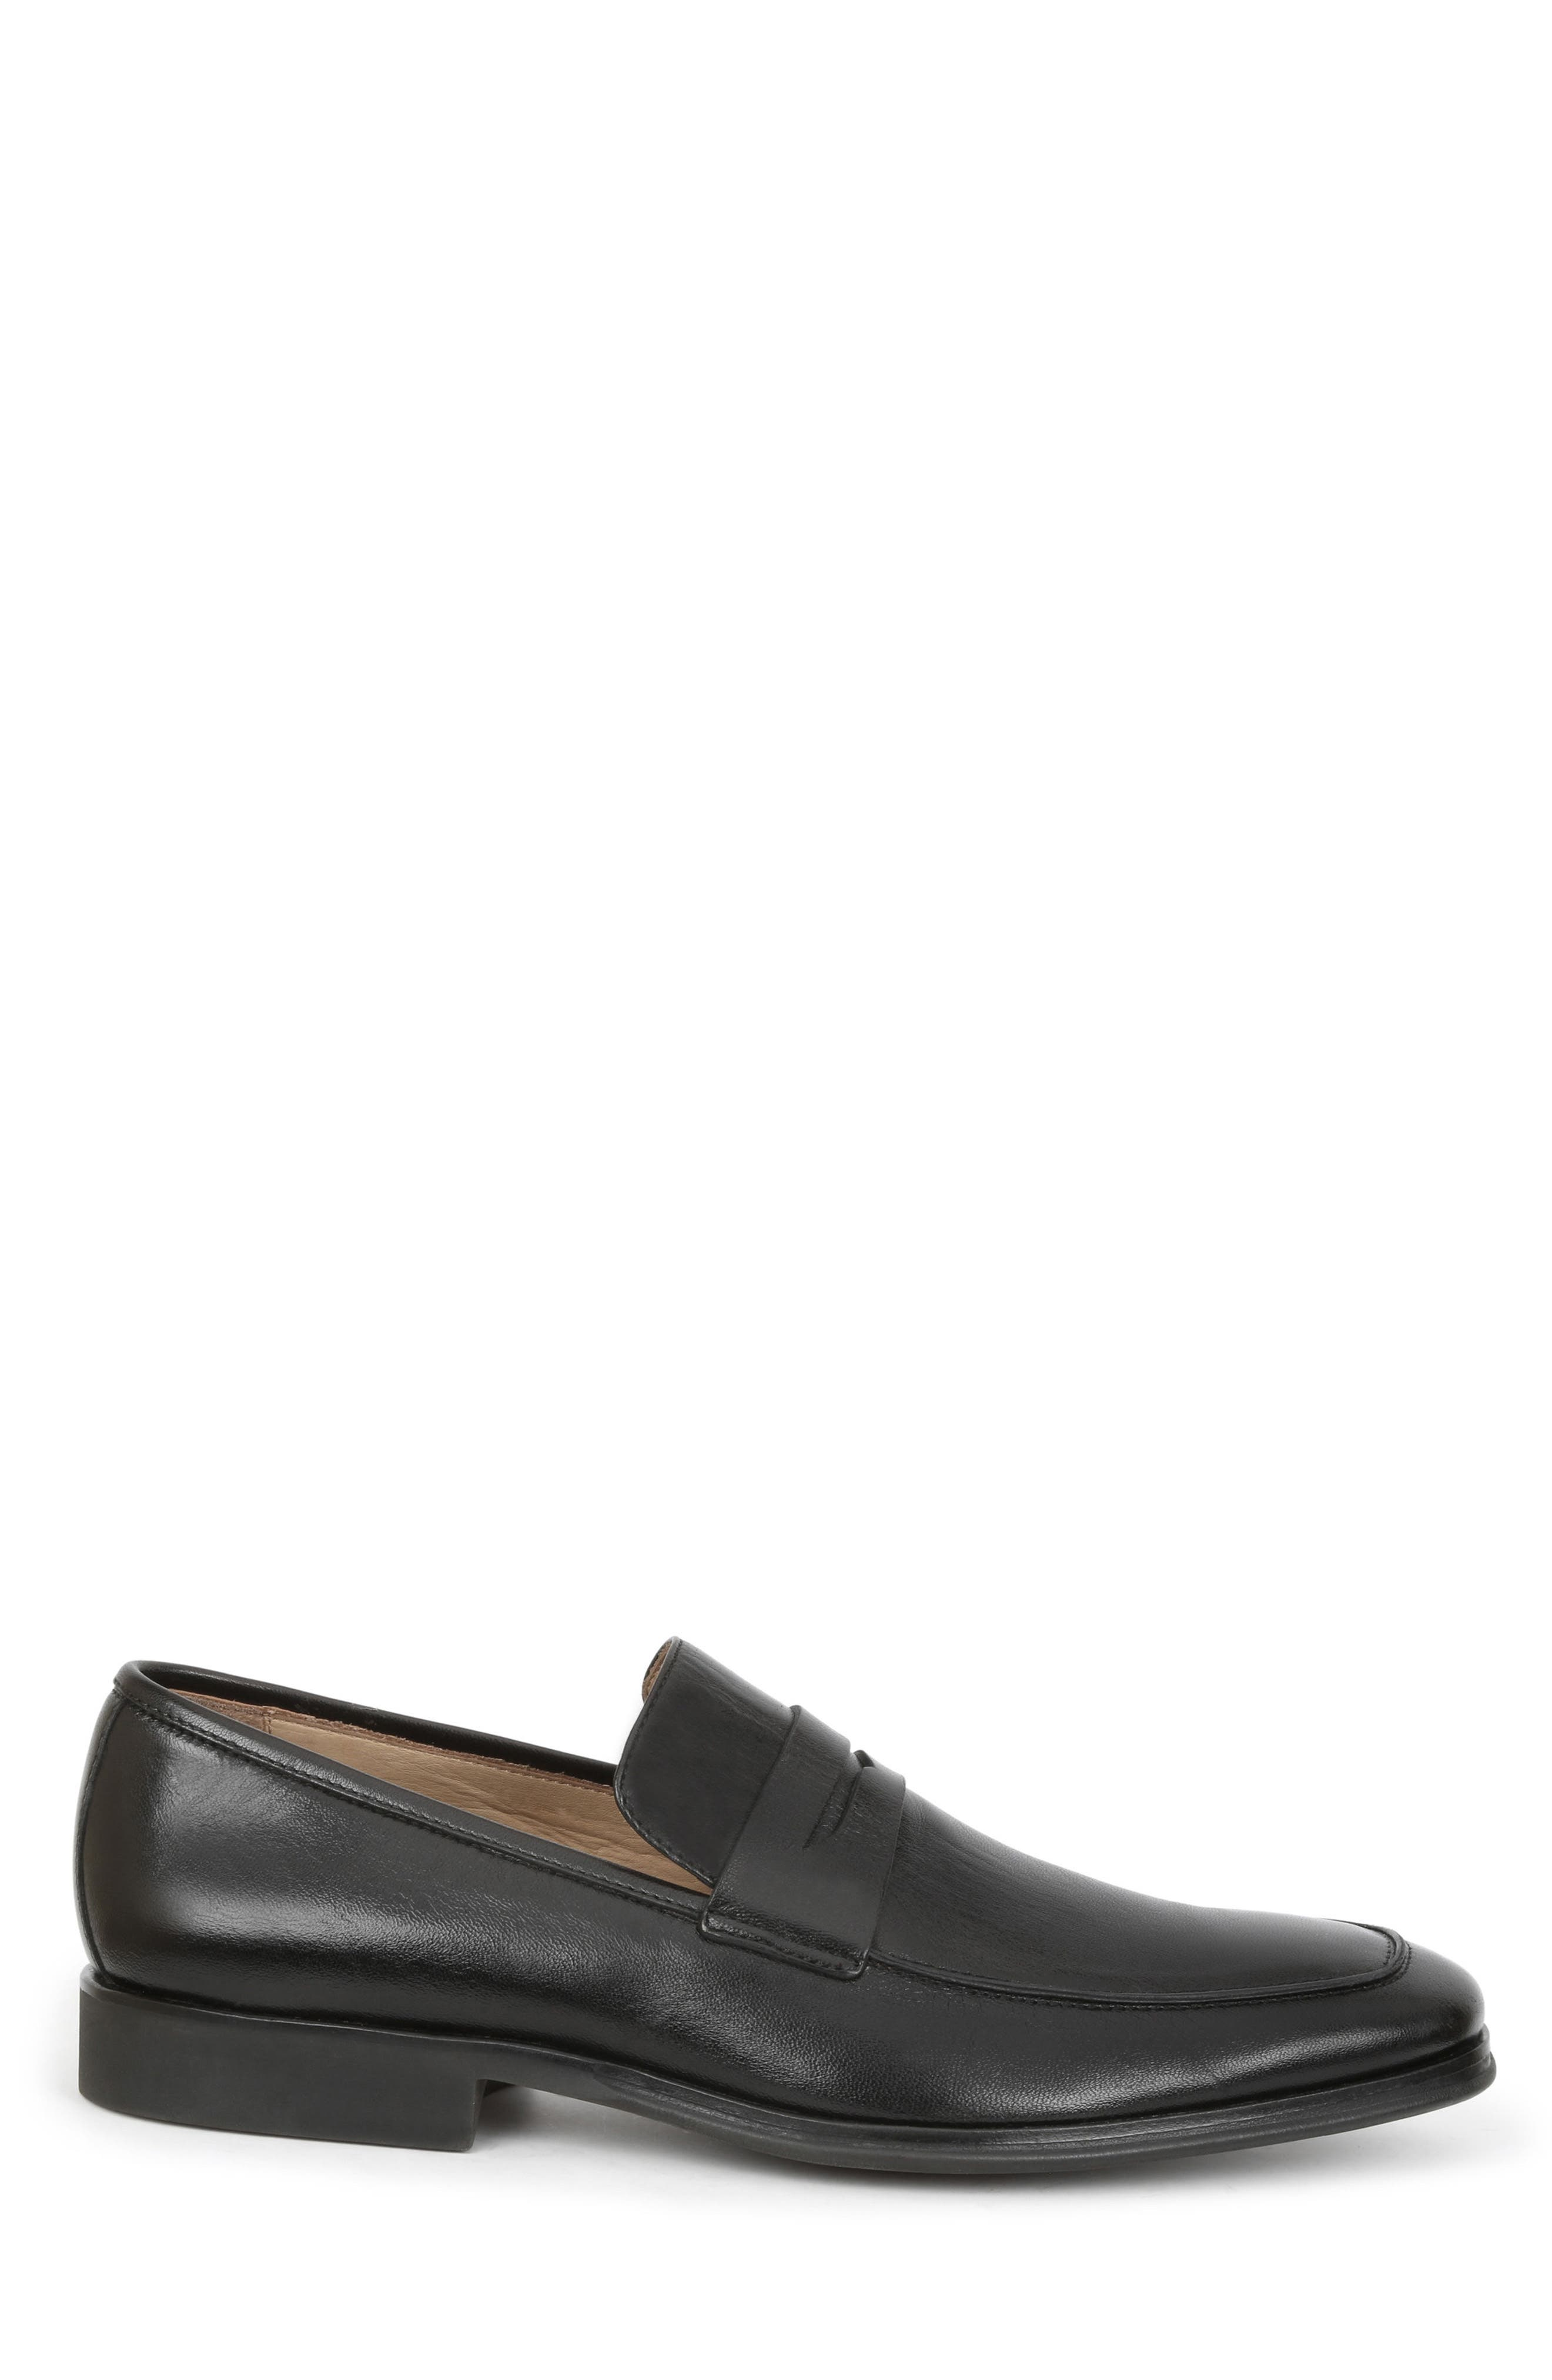 Ragusa Penny Loafer,                             Alternate thumbnail 7, color,